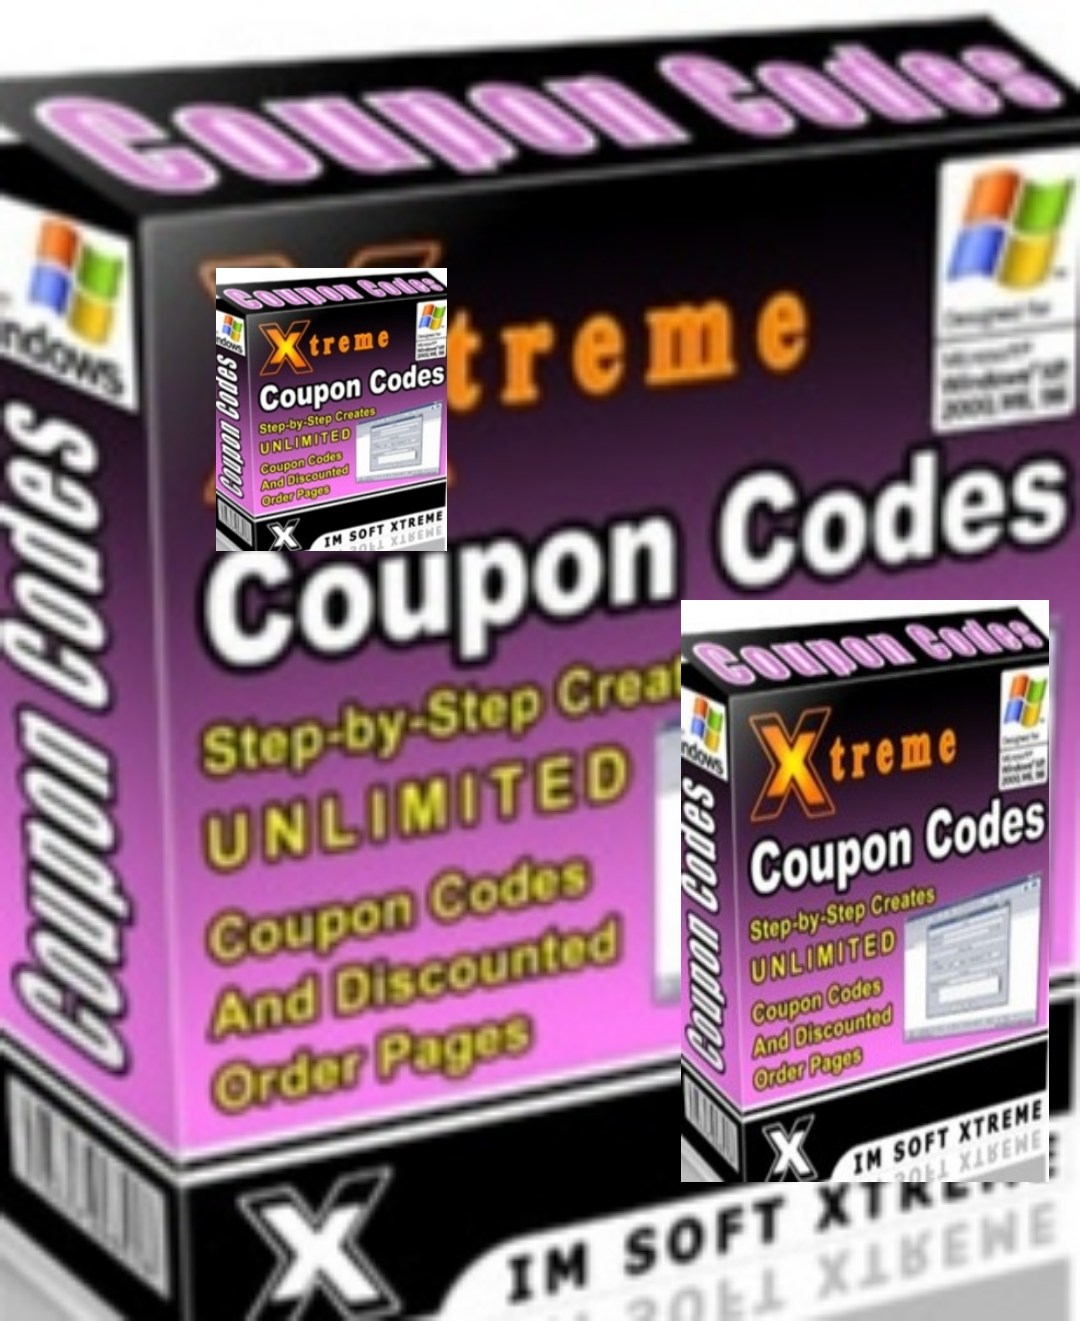 copuon codes online shopping free